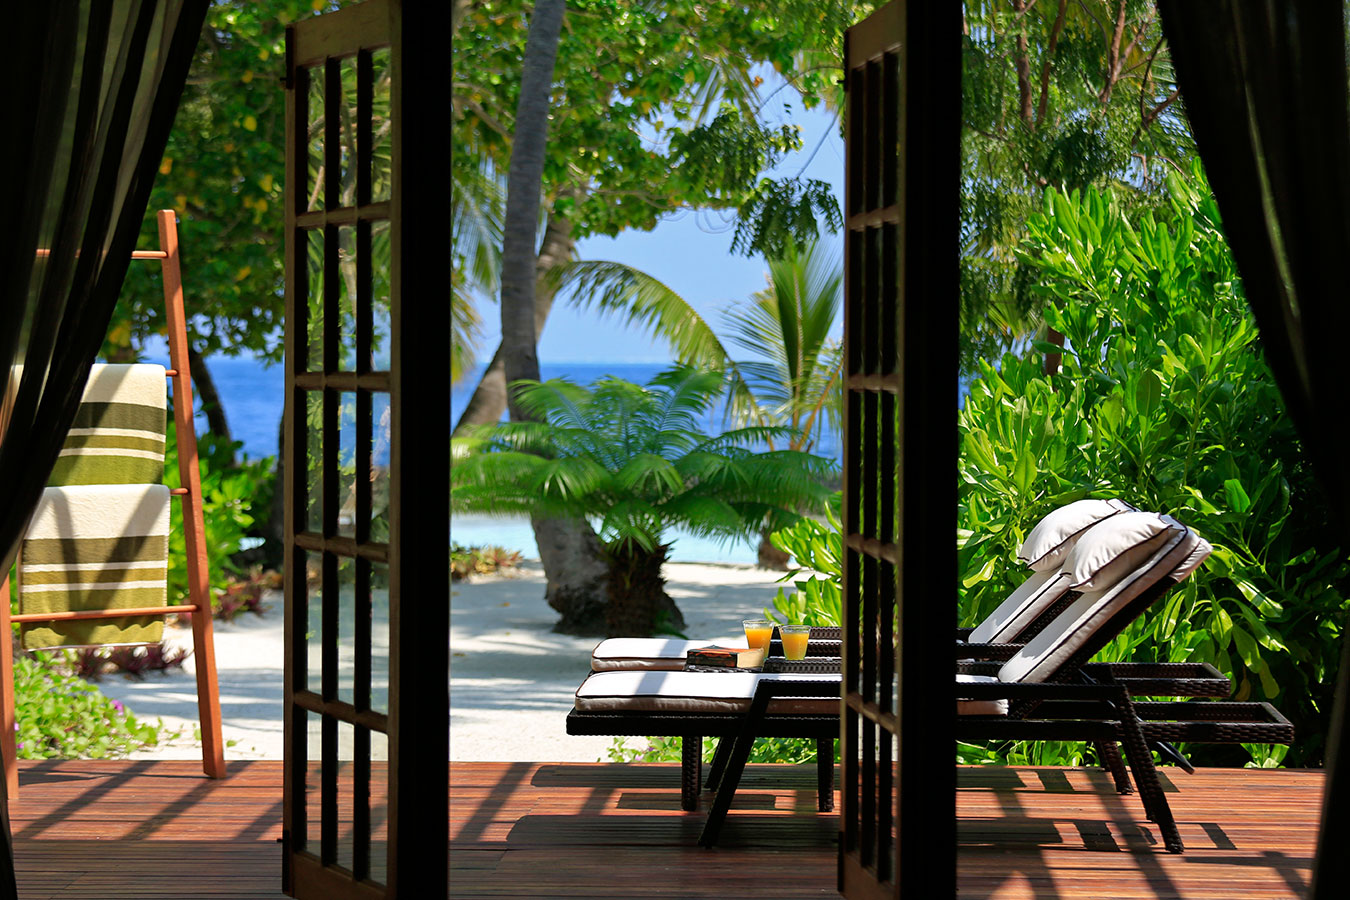 Kurumba Maldives - Presidential Pool Villa - Balcony Image - Maldives Resorts